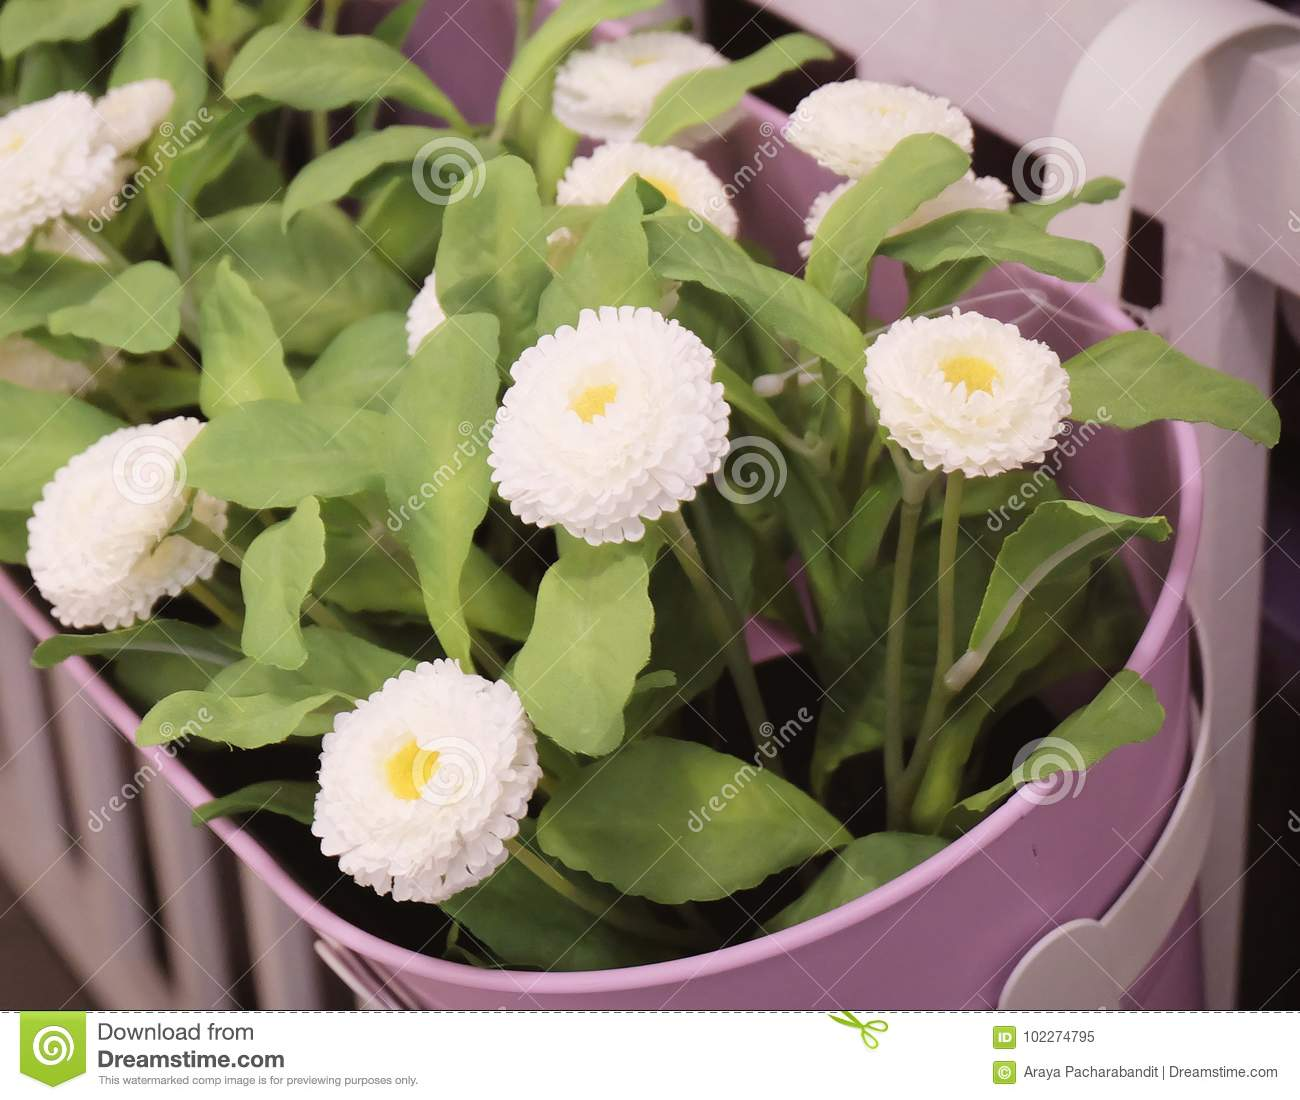 Little White Artificial Flowers For Home Decor Stock Image Image